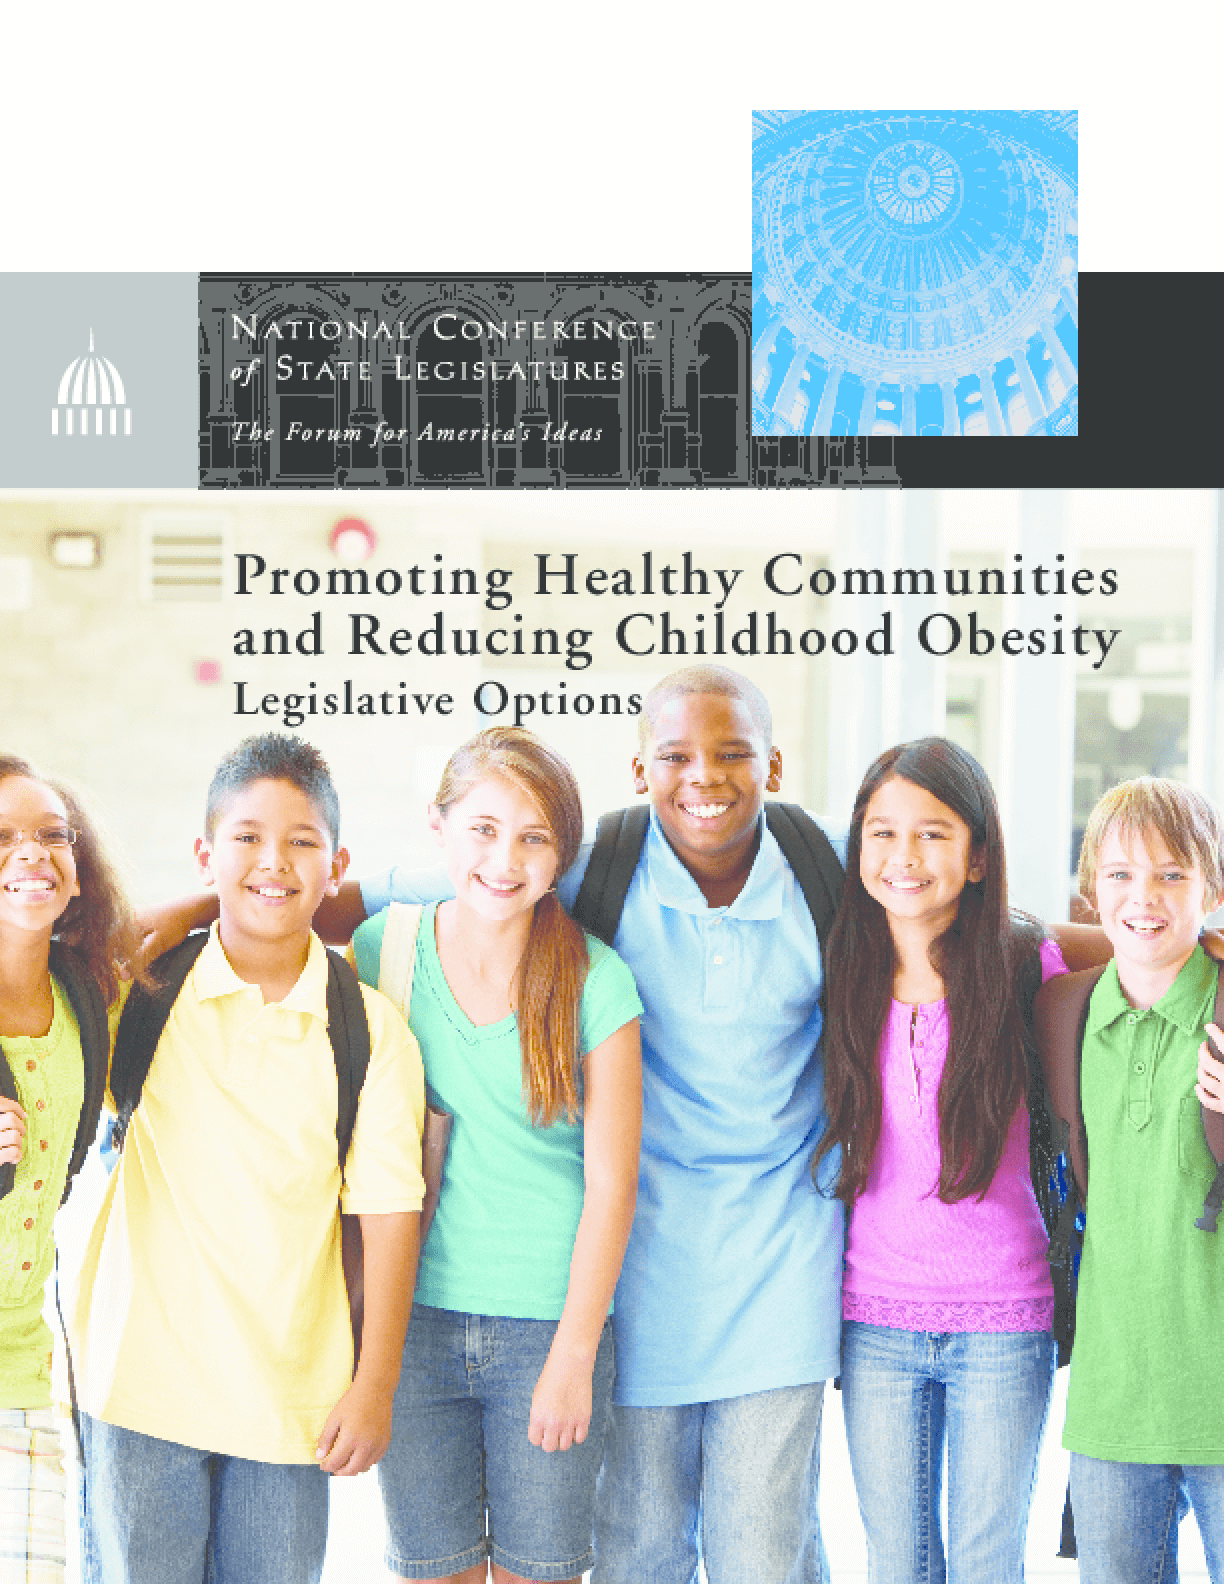 Promoting Healthy Communities and Reducing Childhood Obesity: Legislative Options